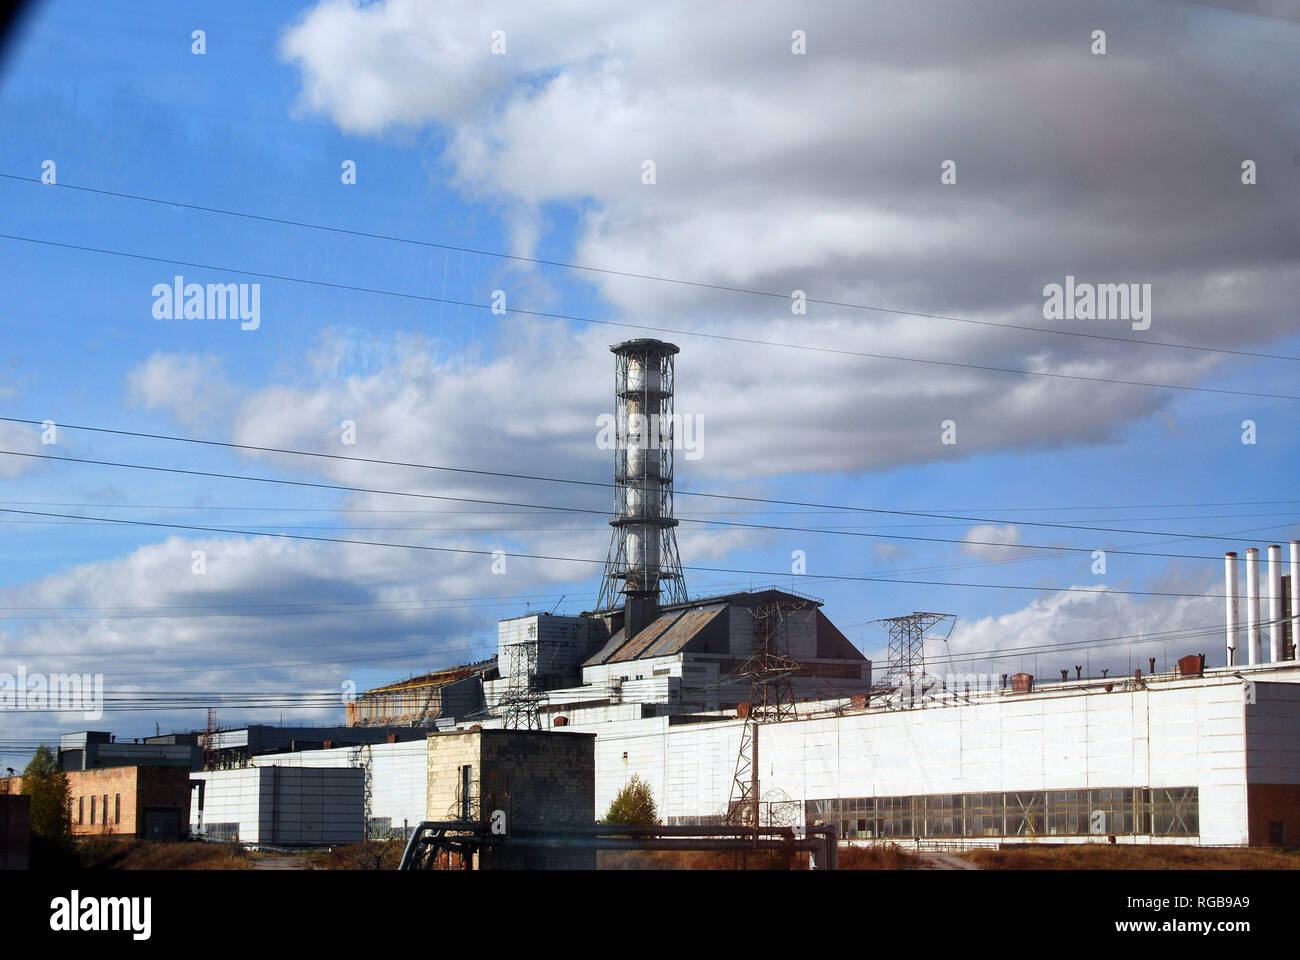 The Chernobyl Nuclear Power Plant sarcophagus covering reactor number 4 that was replaced in 2017 - Stock Image